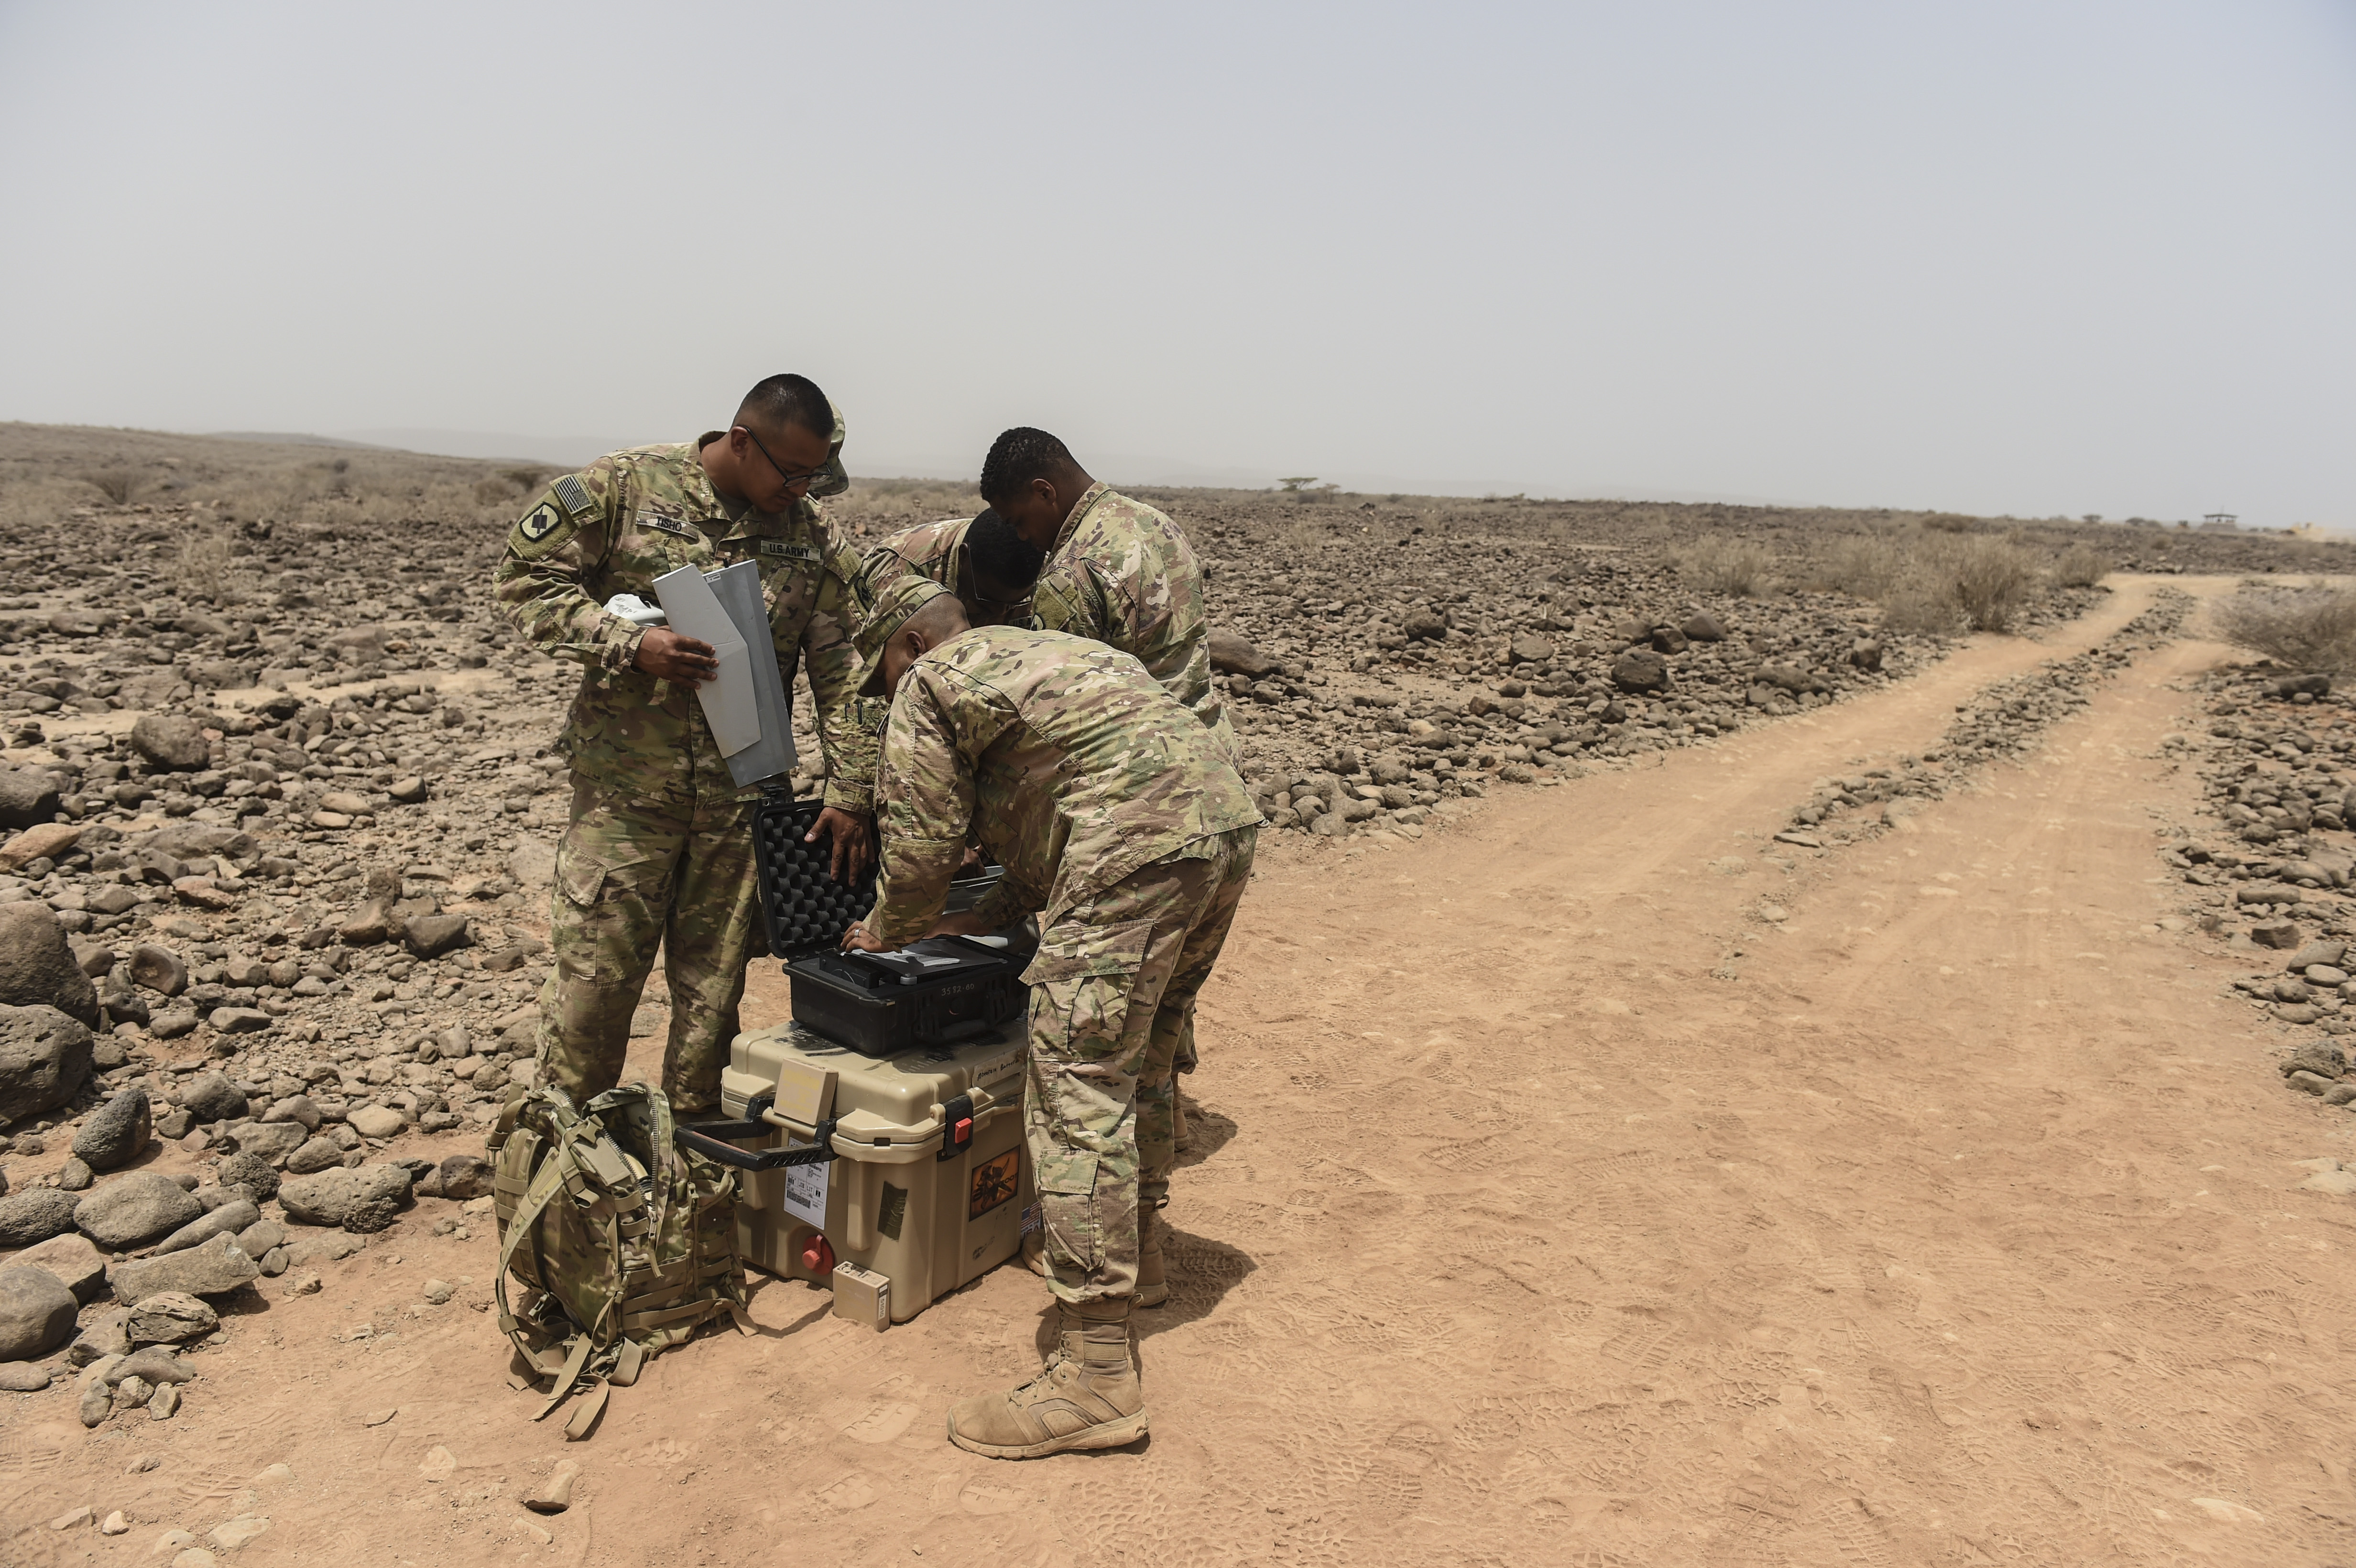 U.S. Army Soldiers assigned to the 1st Battalion, 153rd Infantry Regiment Task Force Warrior, an associated unit of Combined Joint Task Force - Horn of Africa, disassemble a Raven RQ-11 system during a demonstration in an airfield in southern Djibouti, Aug. 21, 2017. The demonstration was an effort to familiarize Djiboutian Armed Forces members with the unmanned aerial vehicle system, clear up confusion about the Raven RQ-11 and other RPAs, and show the safe operation of the Raven. (U.S. Air Force photo by Staff Sgt. Eboni Prince)